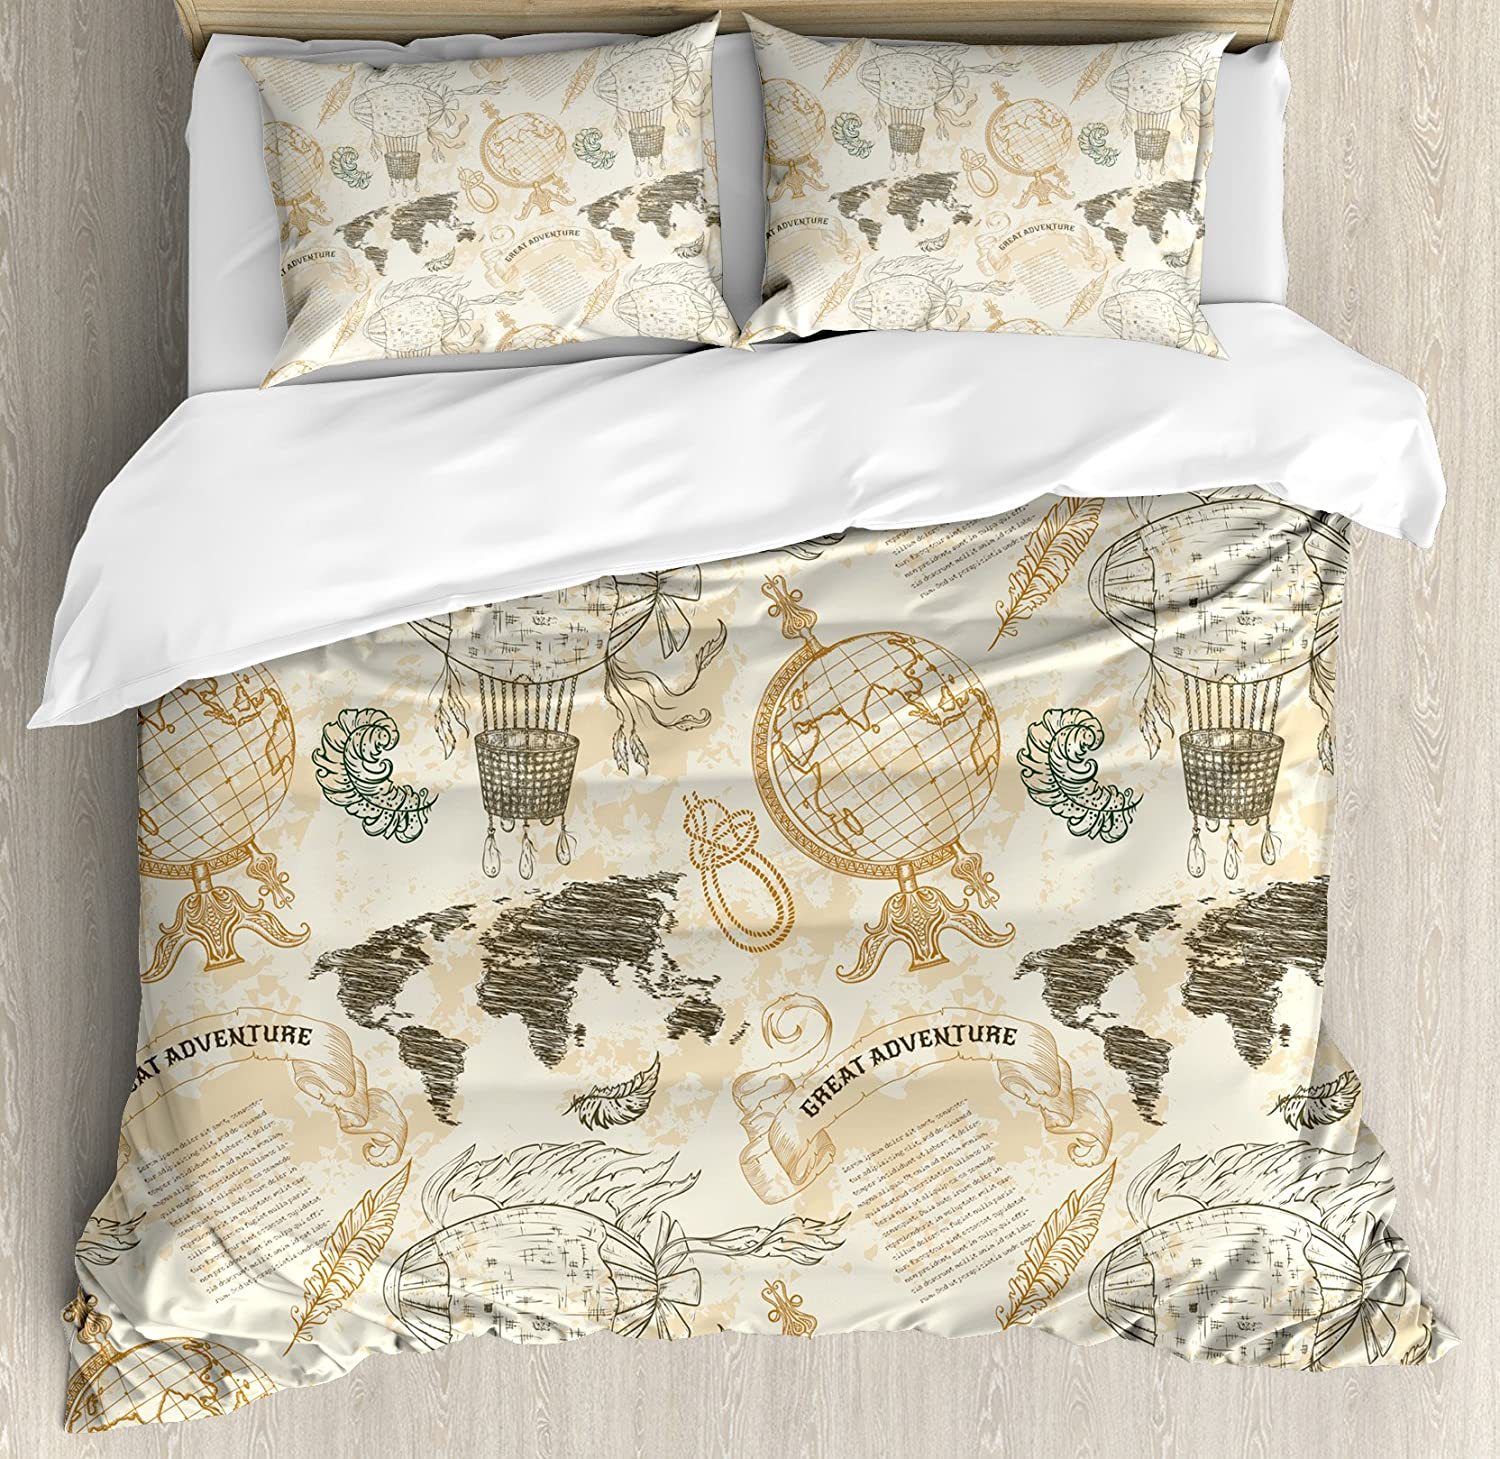 Wanderlust Duvet Cover Set Queen Size, Vintage Globe World Map 3 Piece Bedding Set with 2 Pillow Shams, Beige Olive Green